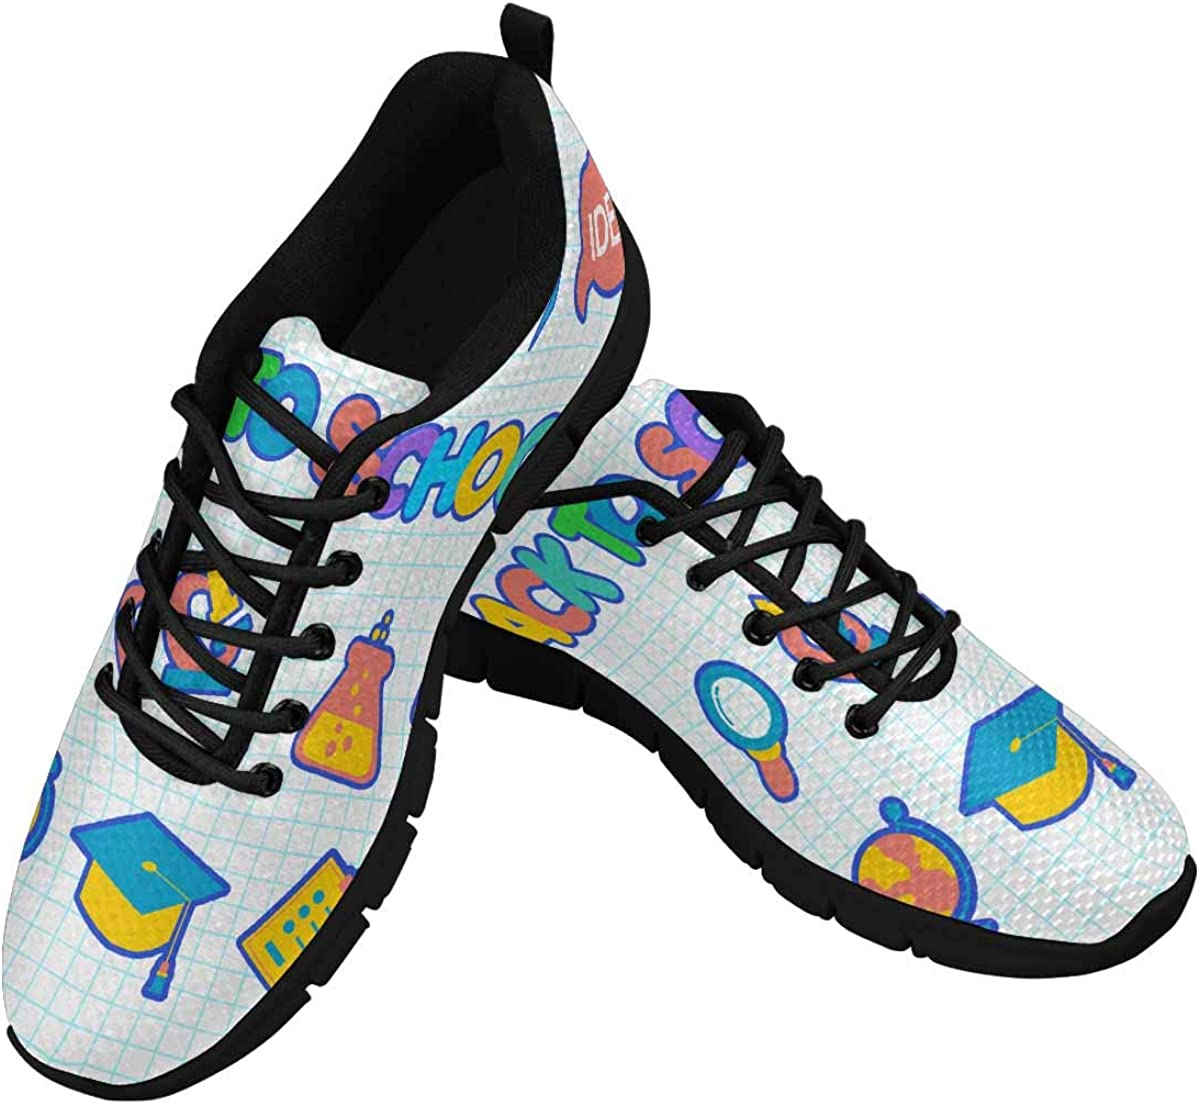 INTERESTPRINT Back to School Women's Lightweight Athletic Casual Gym Sneakers